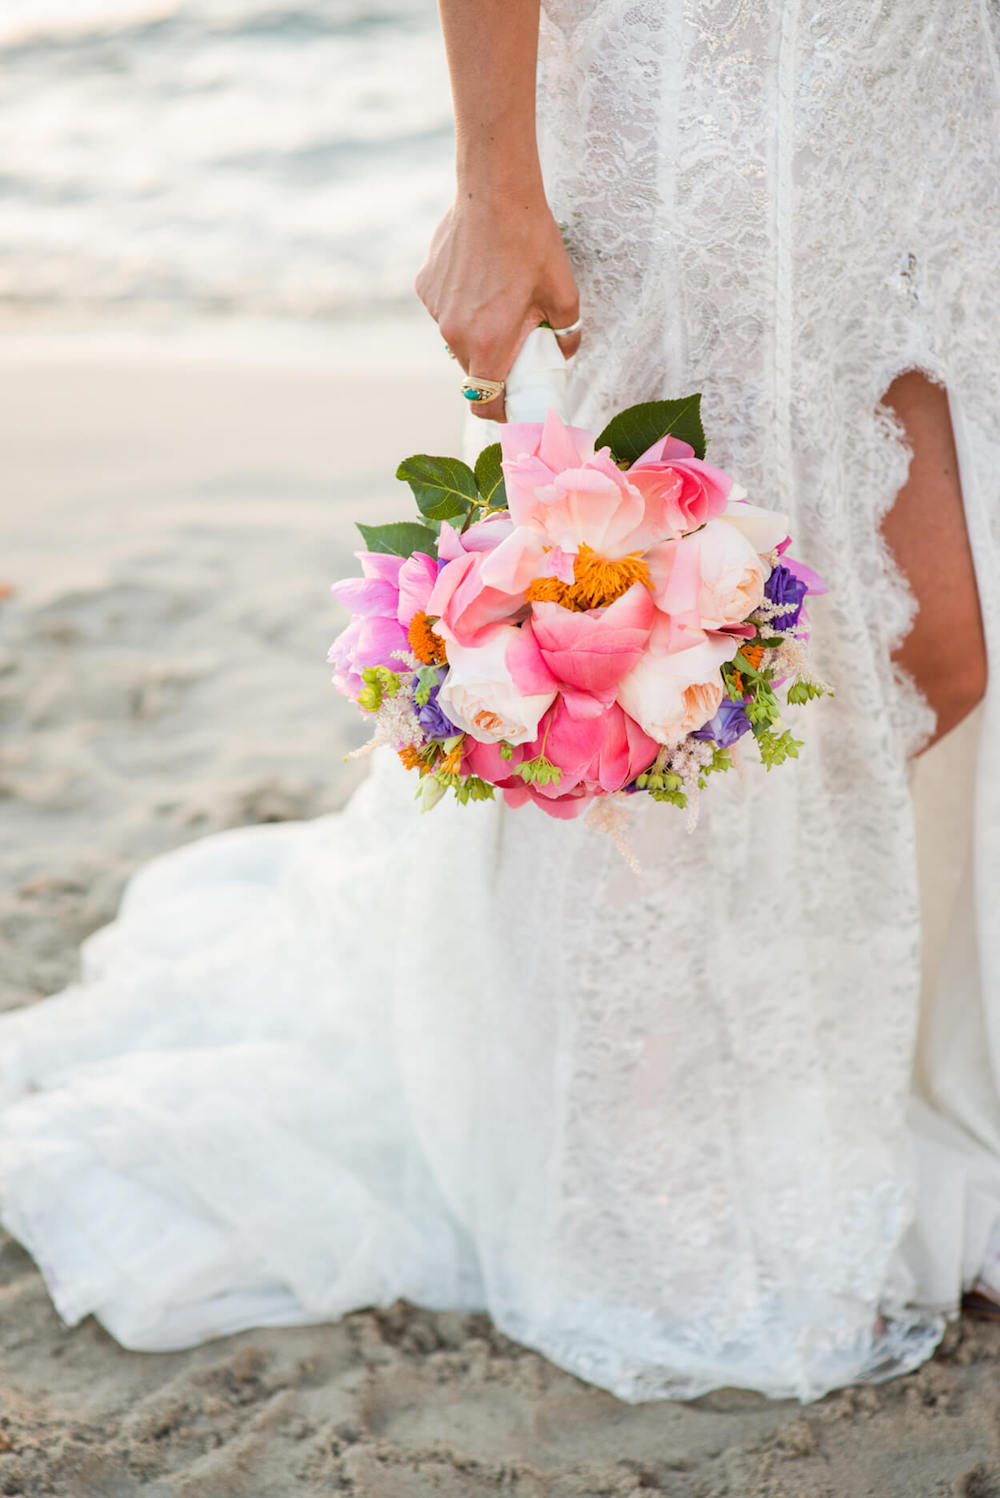 Colourful flowers bouquet wedding bride beach venue sunset view Galai Lahav